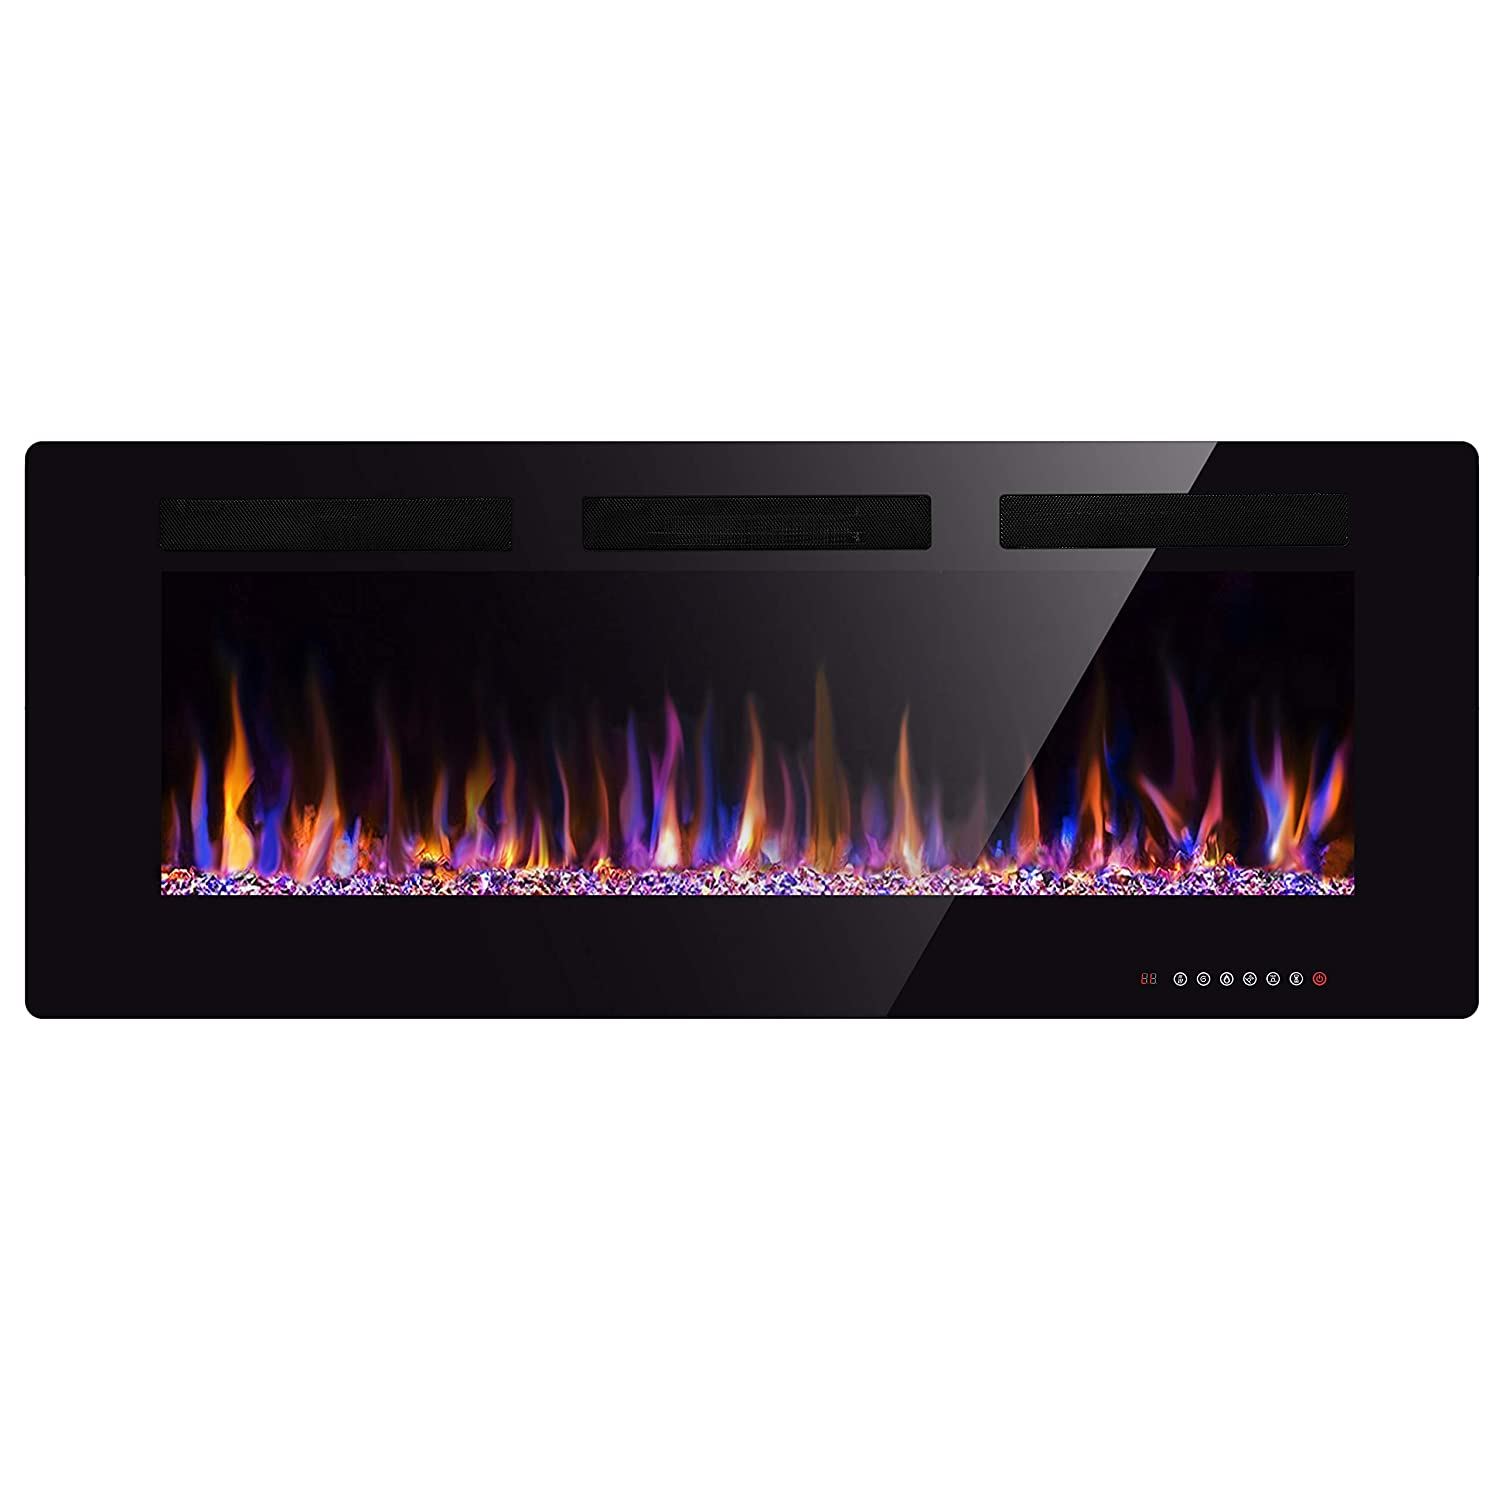 Stupendous Xbeauty 50 Electric Fireplace In Wall Recessed And Wall Mounted 1500W Fireplace Heater And Linear Fireplace With Timer Multicolor Flames Touch Download Free Architecture Designs Aeocymadebymaigaardcom